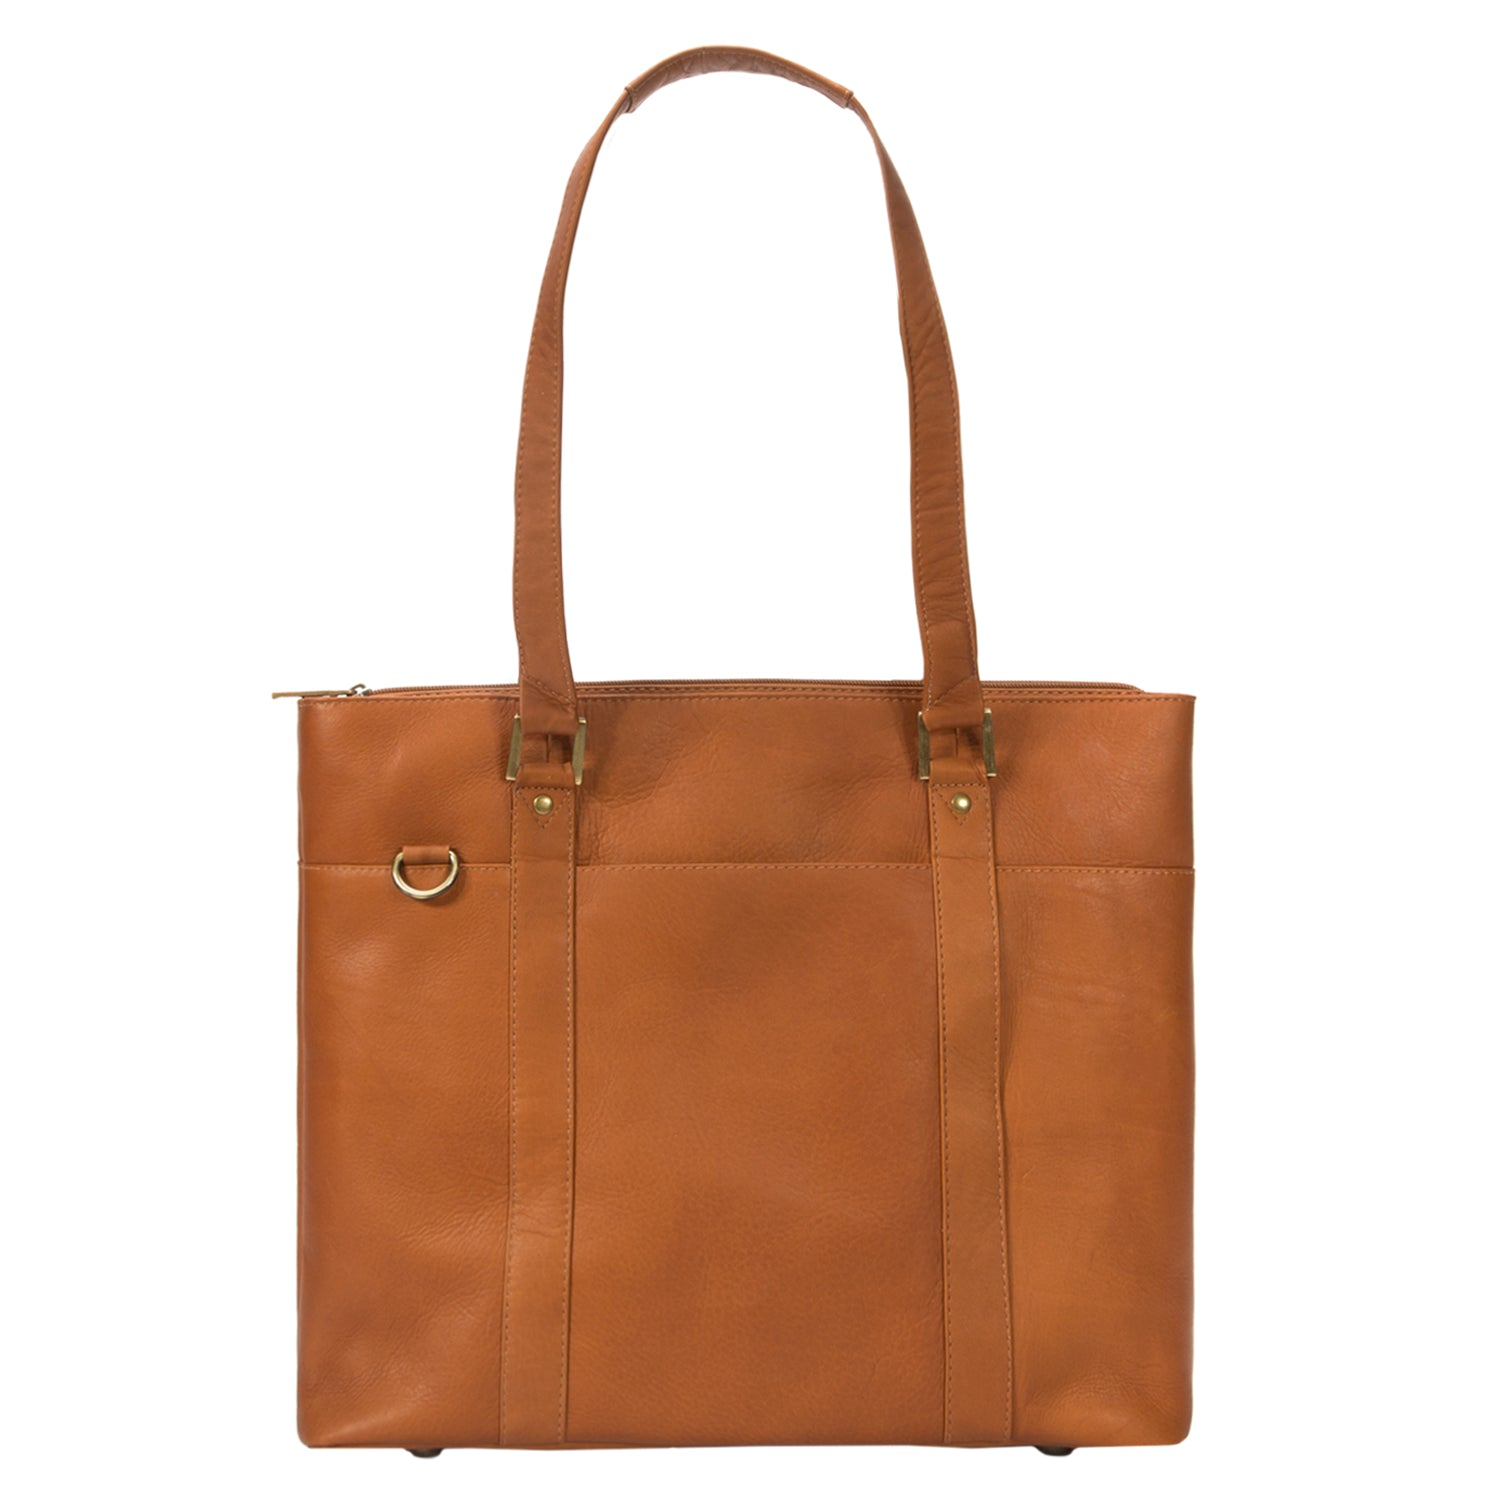 6d54463ae832 Piel Leather Ladies Computer Tote Piel Leather Ladies Computer Tote